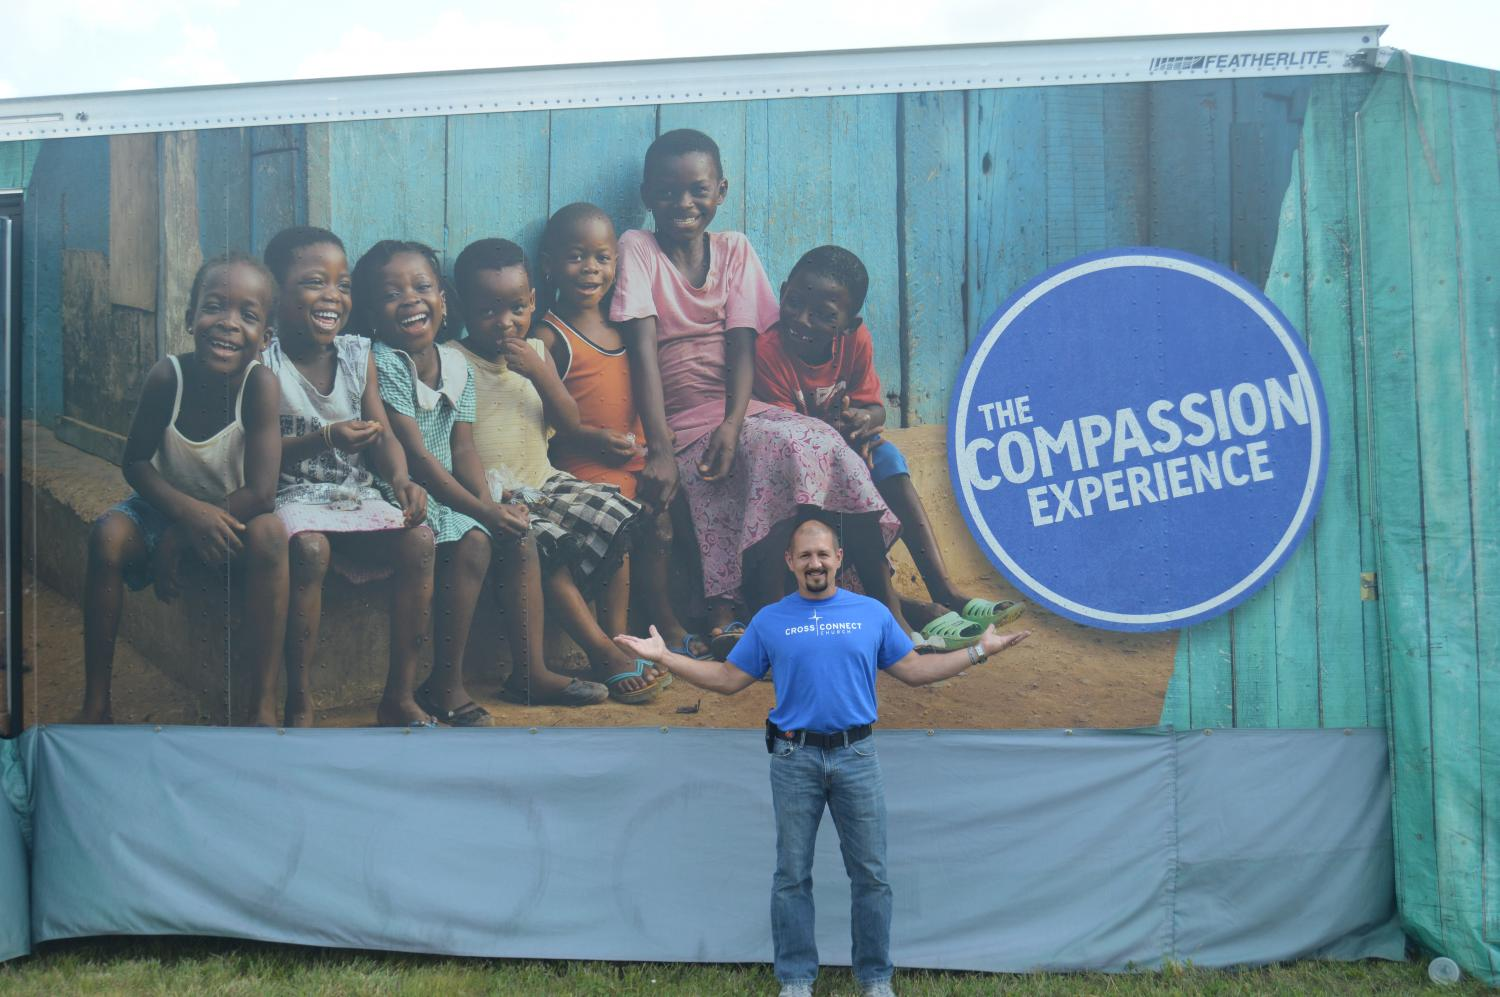 Tommy Theisen, pastor at CrossConnect, poses in front of poster after briefly explaining the purpose of the project.